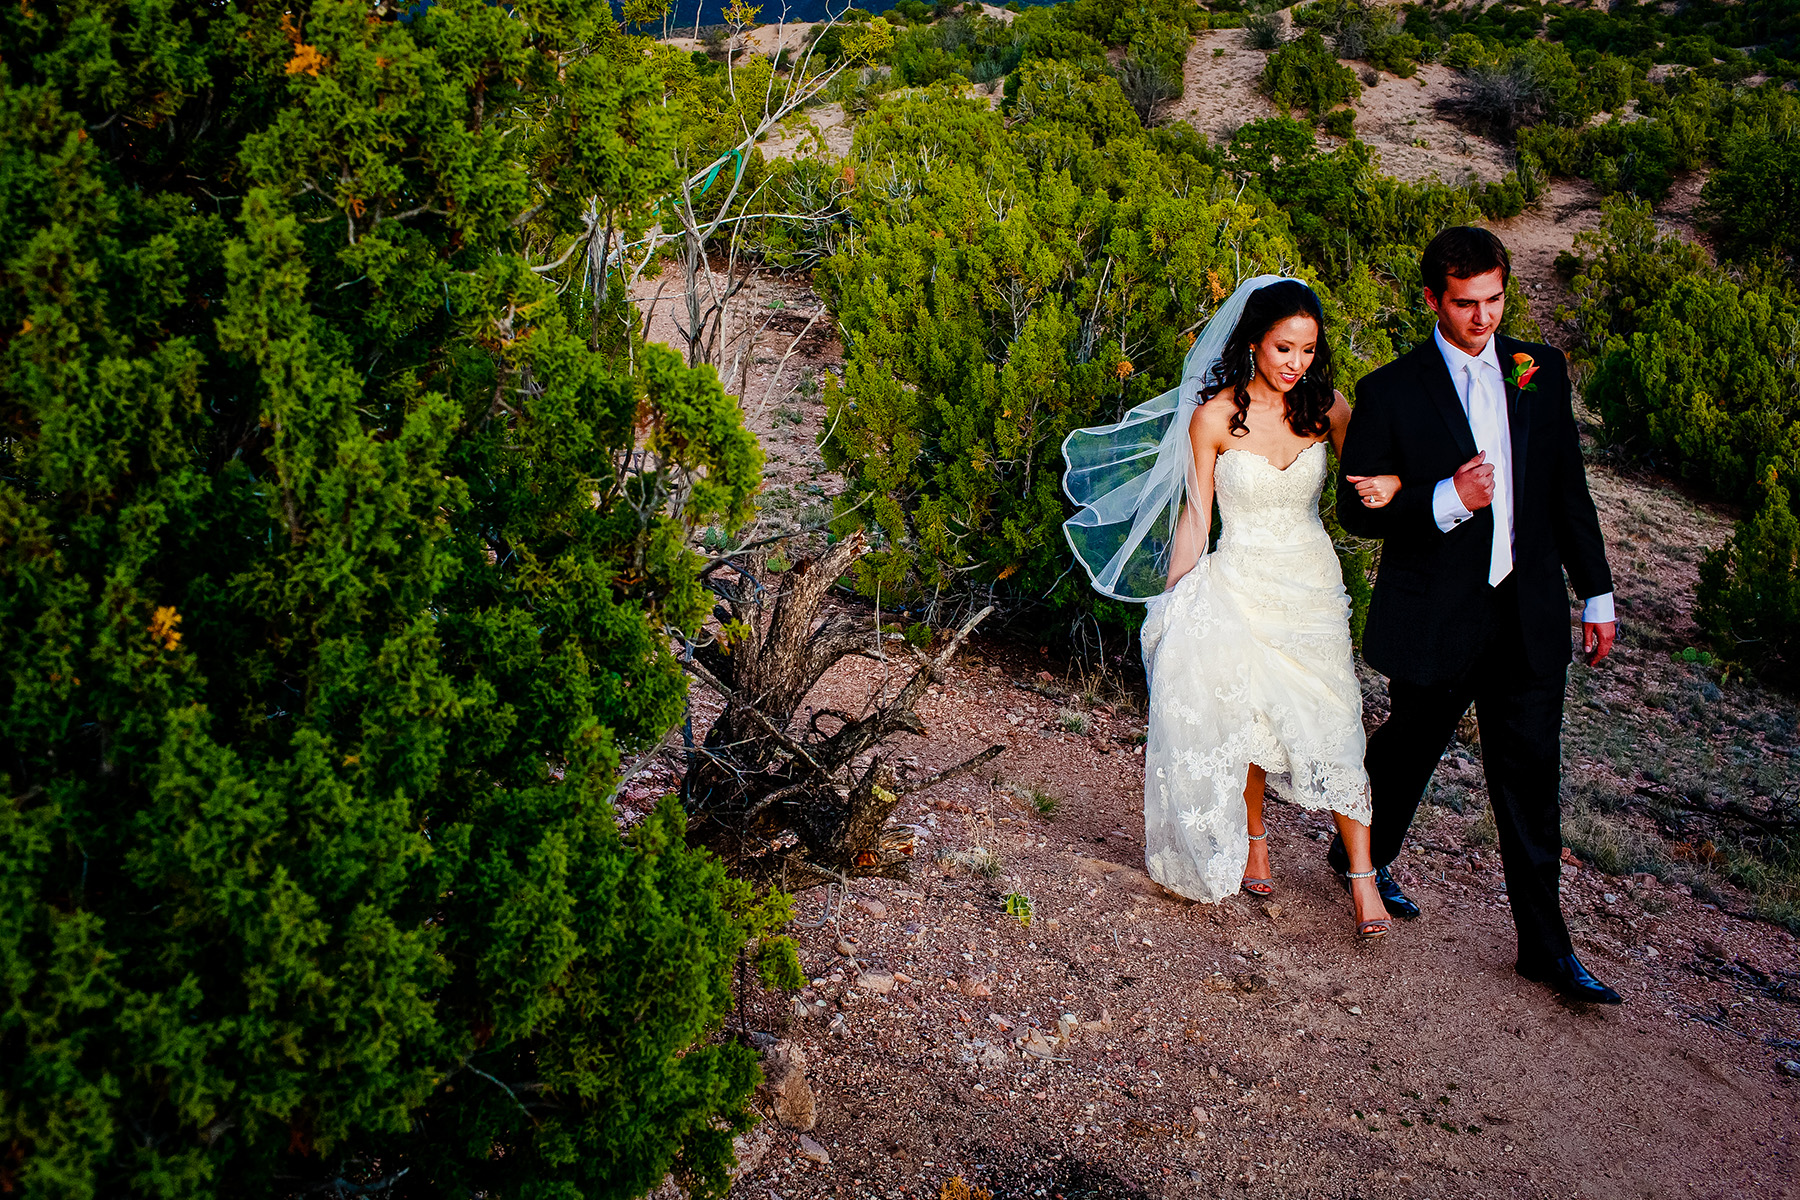 Tabitha-Dallas-wedding-four-seasons-resort-rancho-encantado-santa-fe-new-mexico-1060